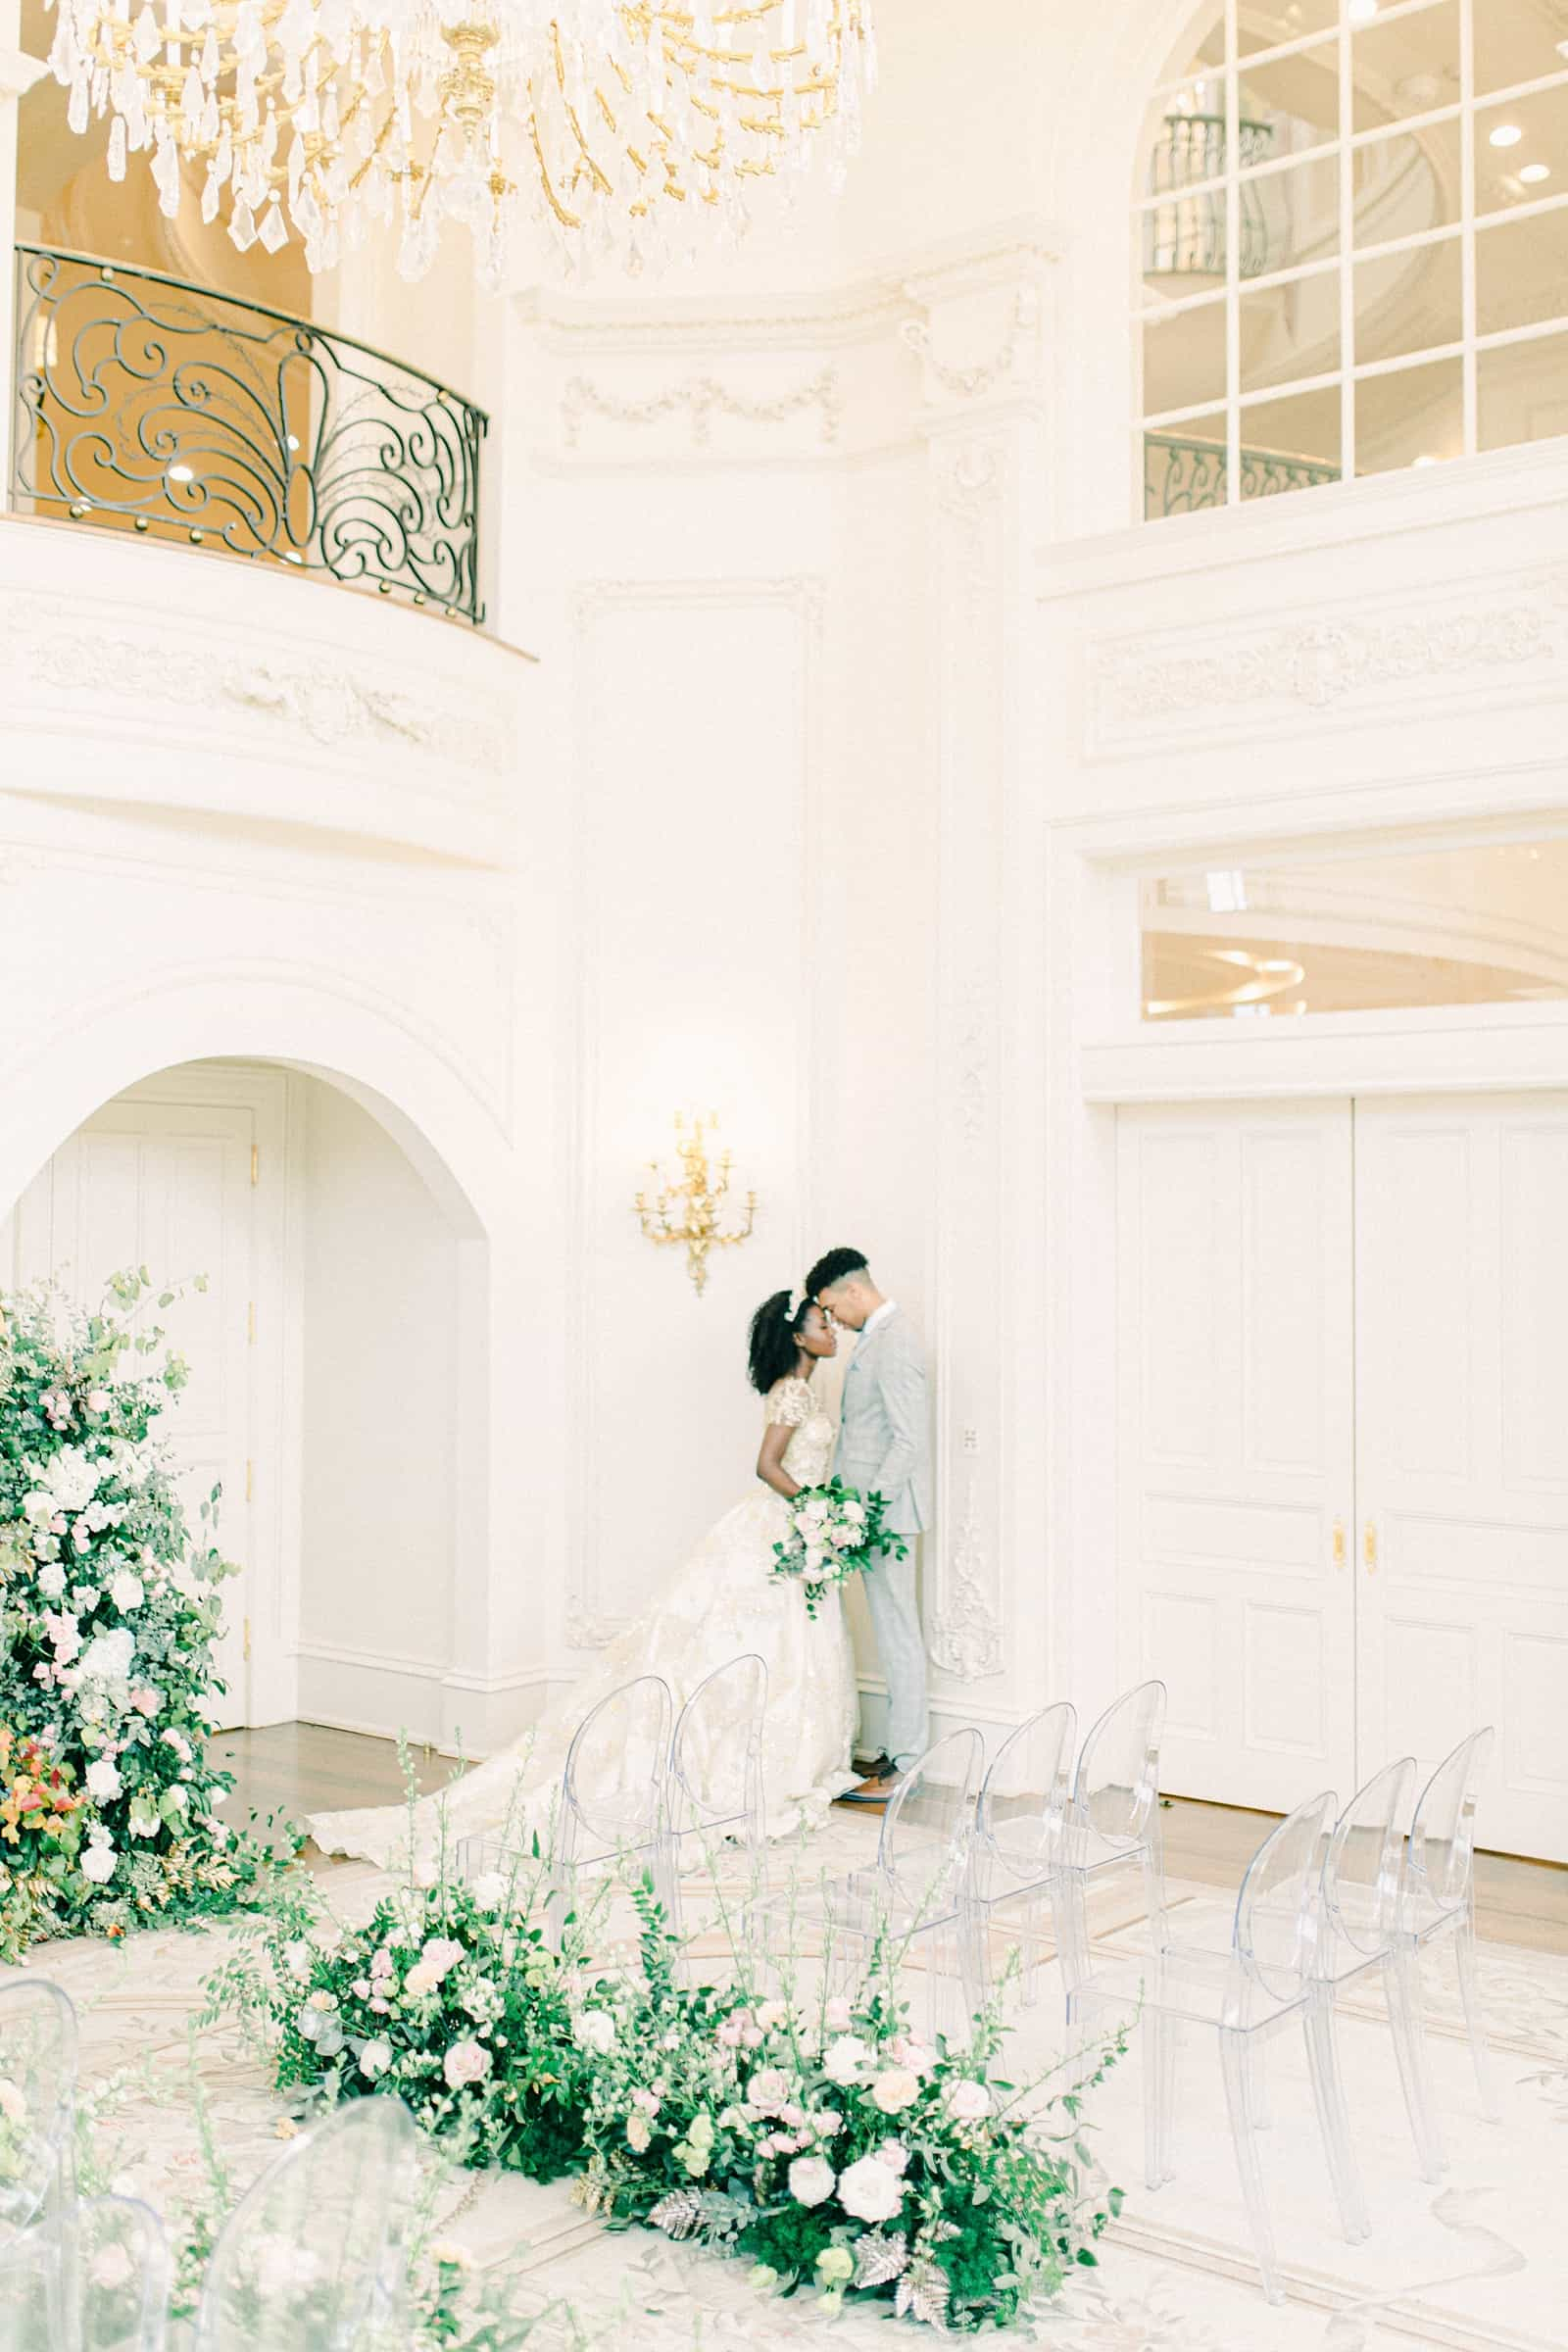 Disney princess bride and groom in all white ballroom, greenery and floral garland lining aisle, ceremony decor